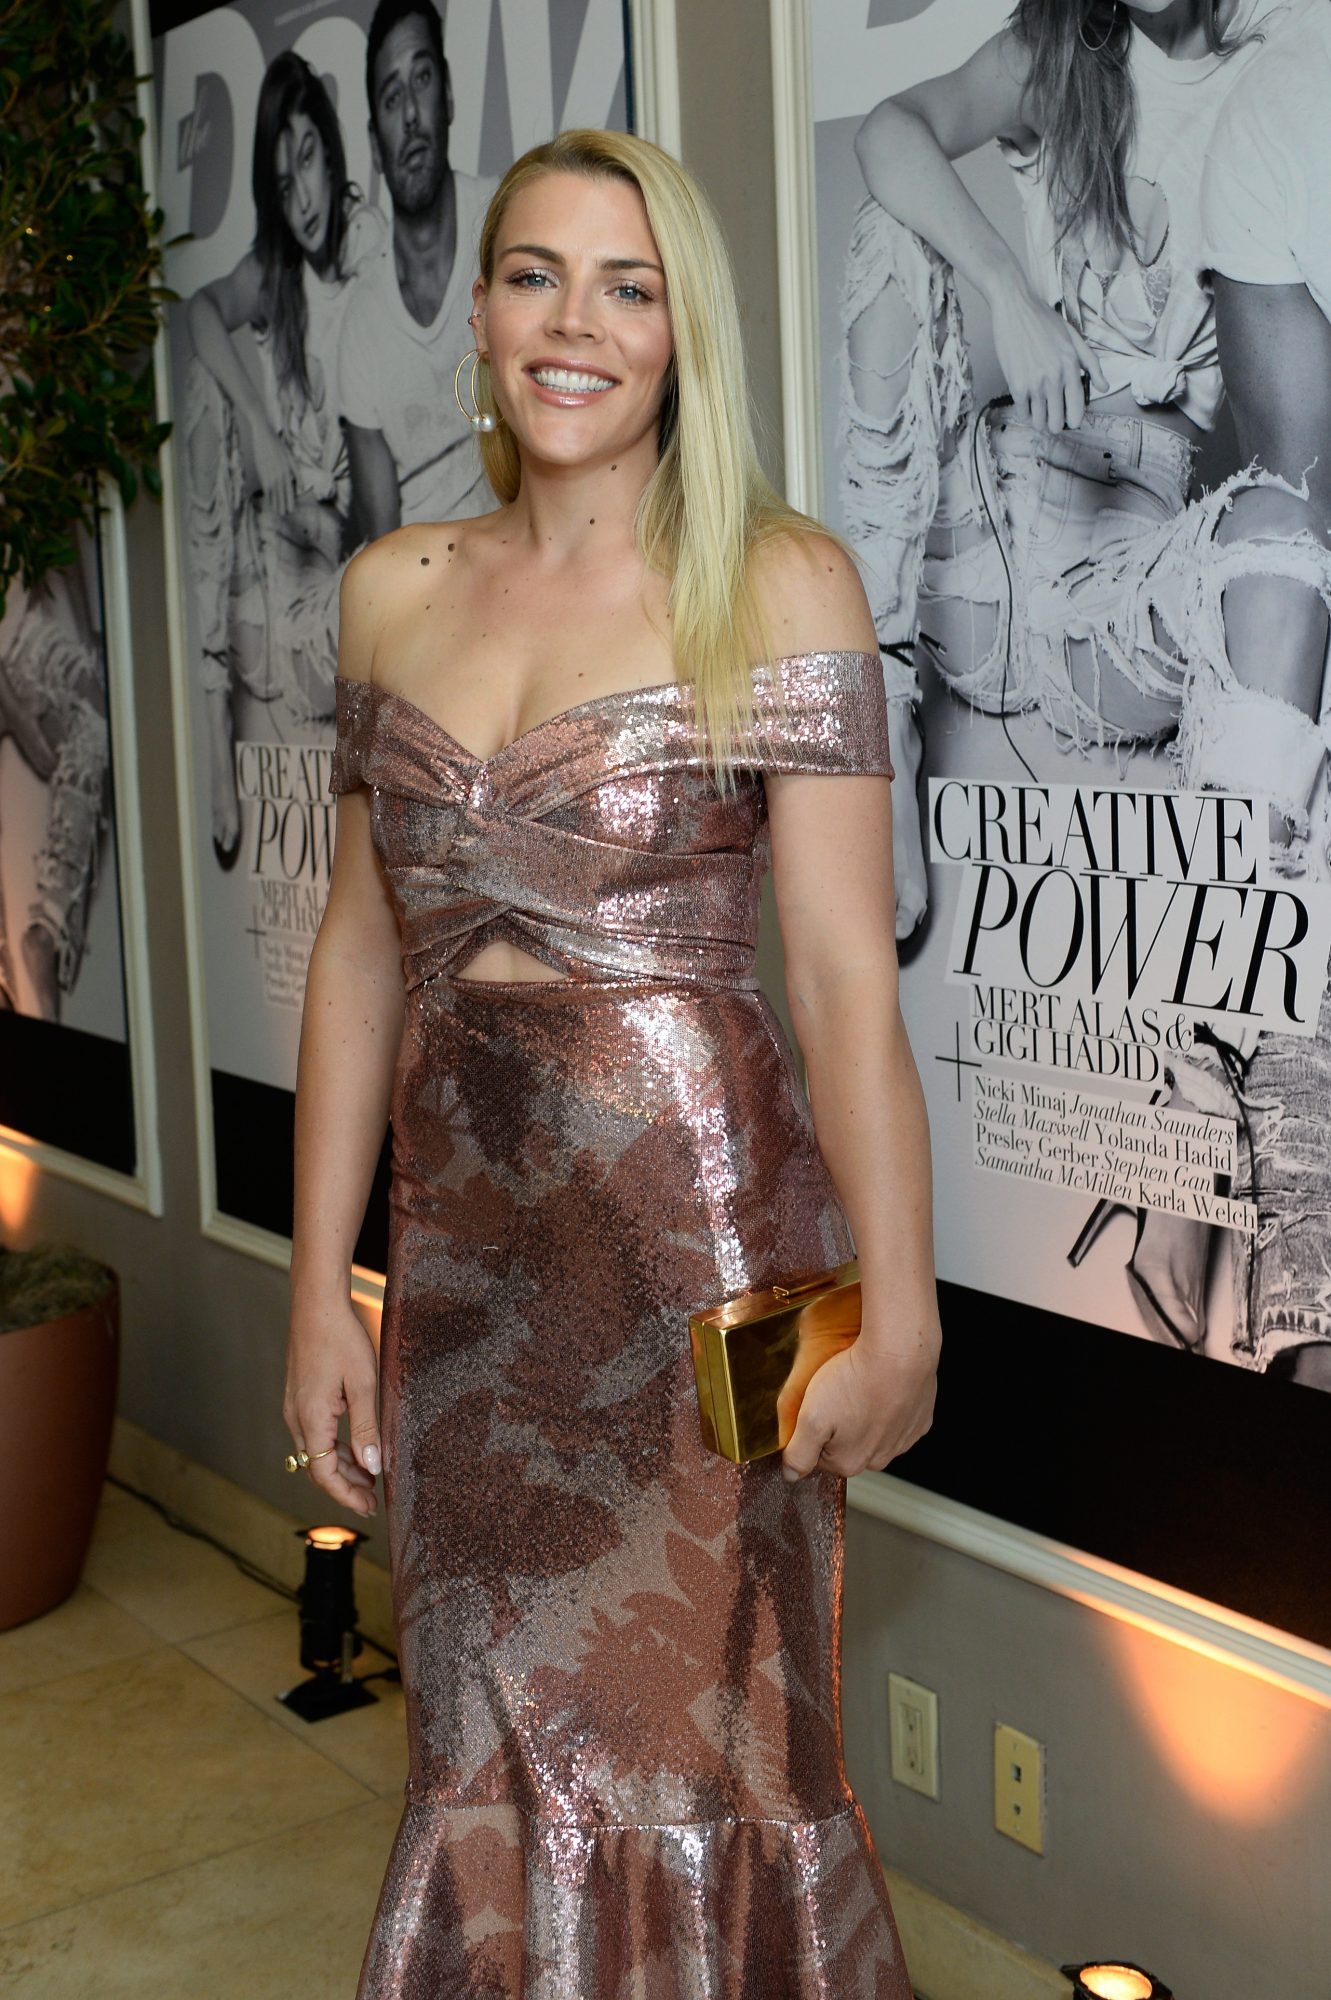 Busy Philipps Calls Out Fan Who Told Her 'You've Lost Some of Your Plumpness'